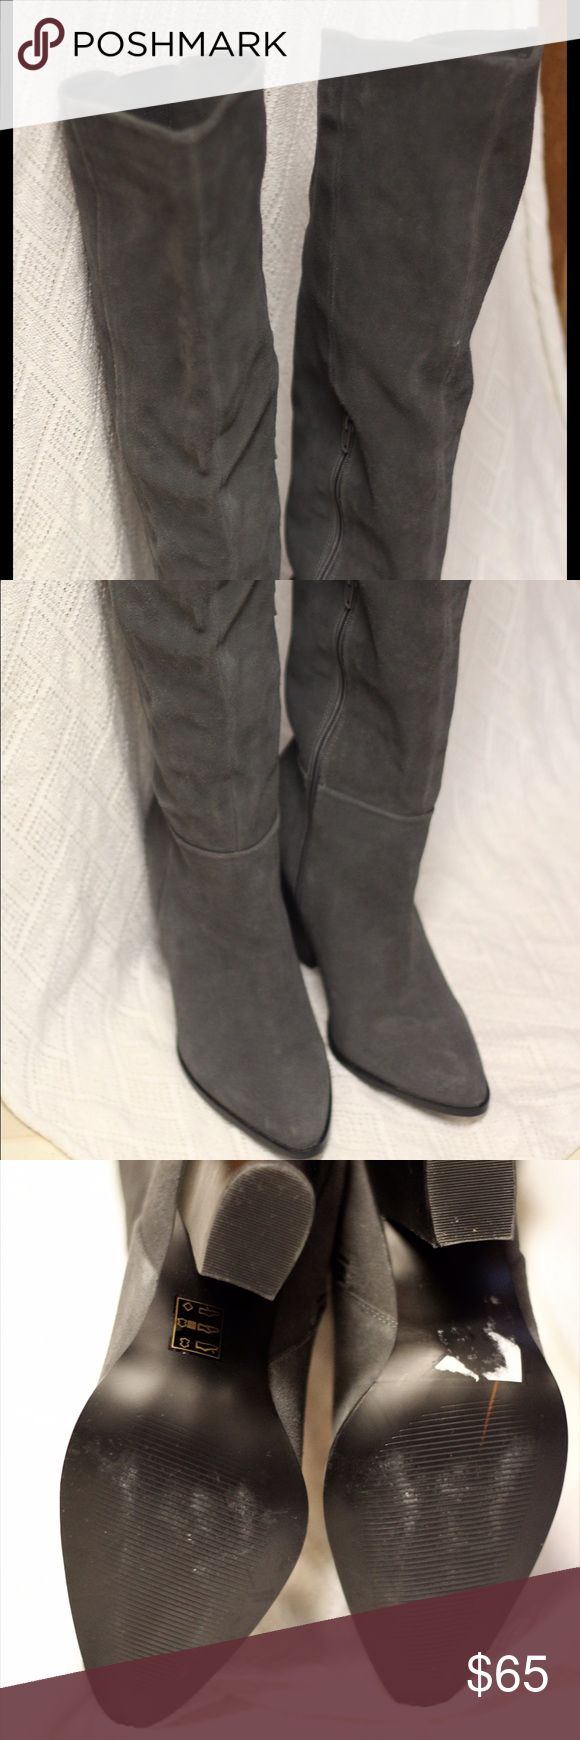 Suede Knee High Boots: Design Lab Parillo Very gently used, only worn about 5 times Soft suede shapes this trendy to-the-knee style. - Design Lab Lord & Taylor Parillo Suede Knee-High Boots #suede #kneehigh Design Lab Shoes Heeled Boots